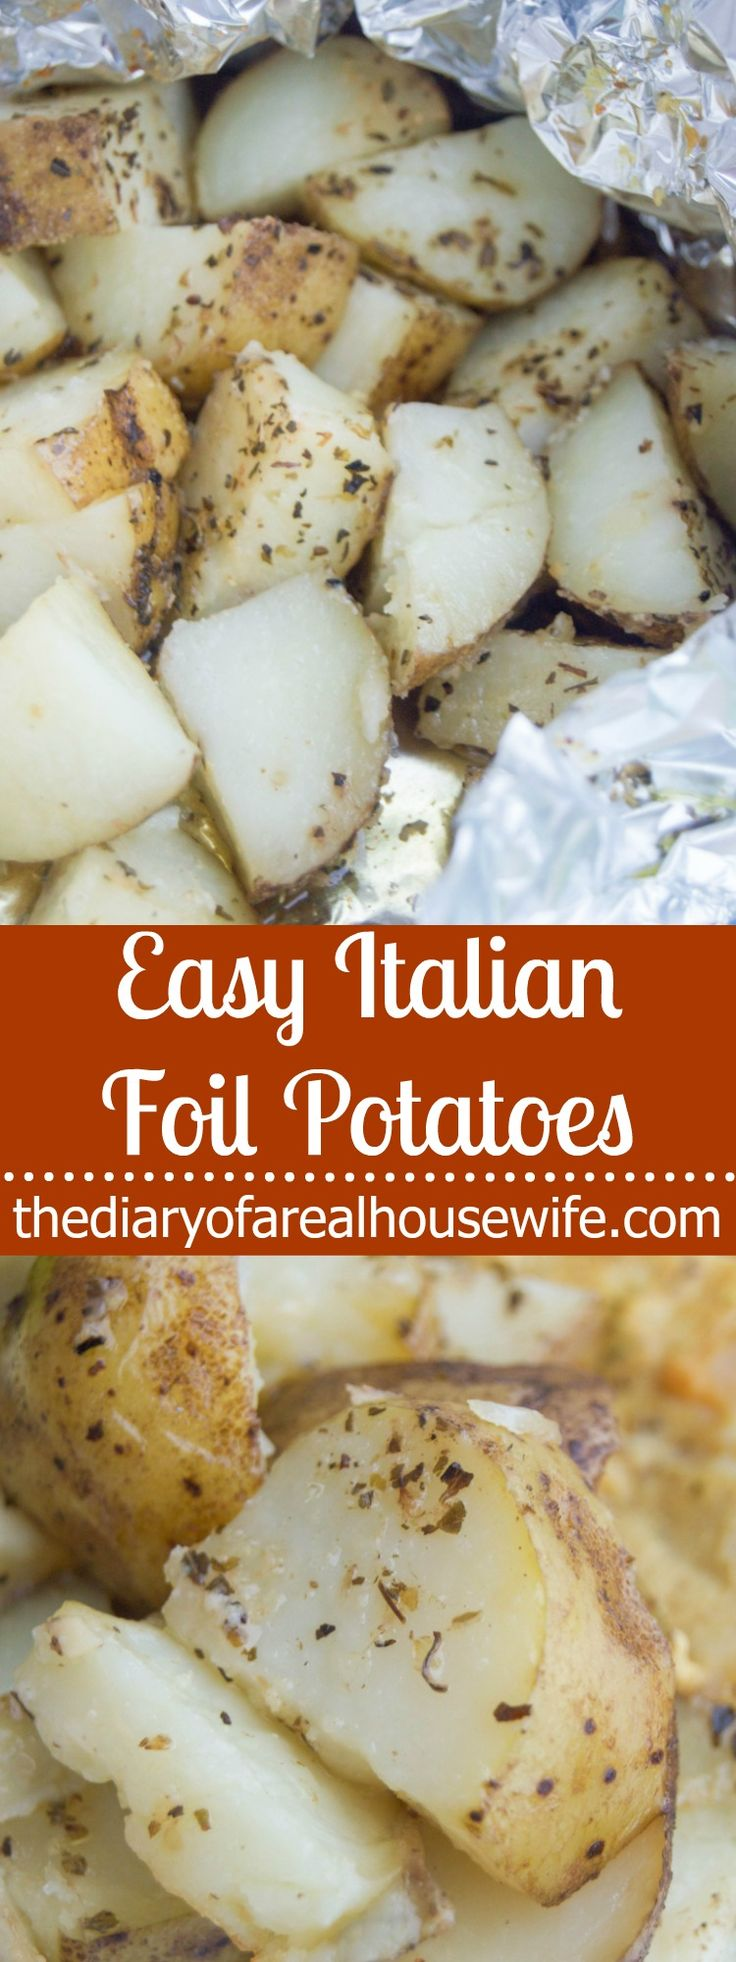 Easy Italian Foil Potatoes. The perfect side dish to any meal and so simple to make. These Easy Italian Foil Potatoes bake in just a few minutes and have easy clean up.